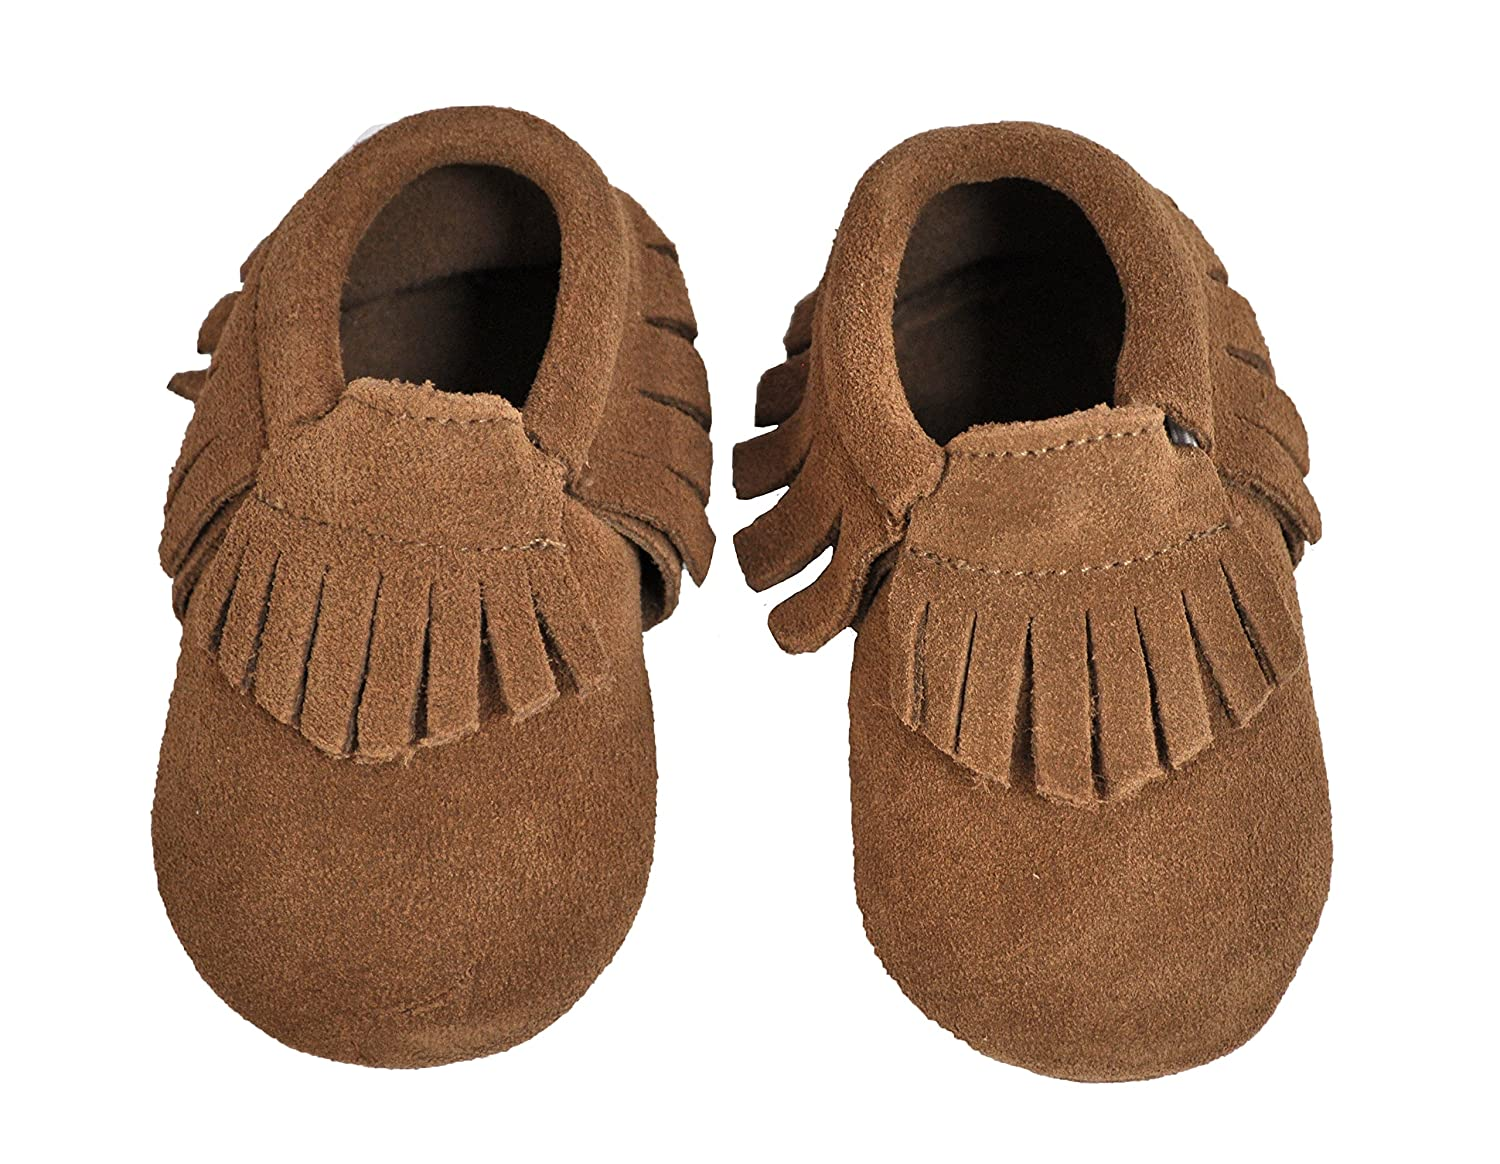 Amazon.com | Liv & Leo Baby Tassels Soft Sole Fringe Moccasins 100% Suede - Brown (12-18 Month) | Shoes